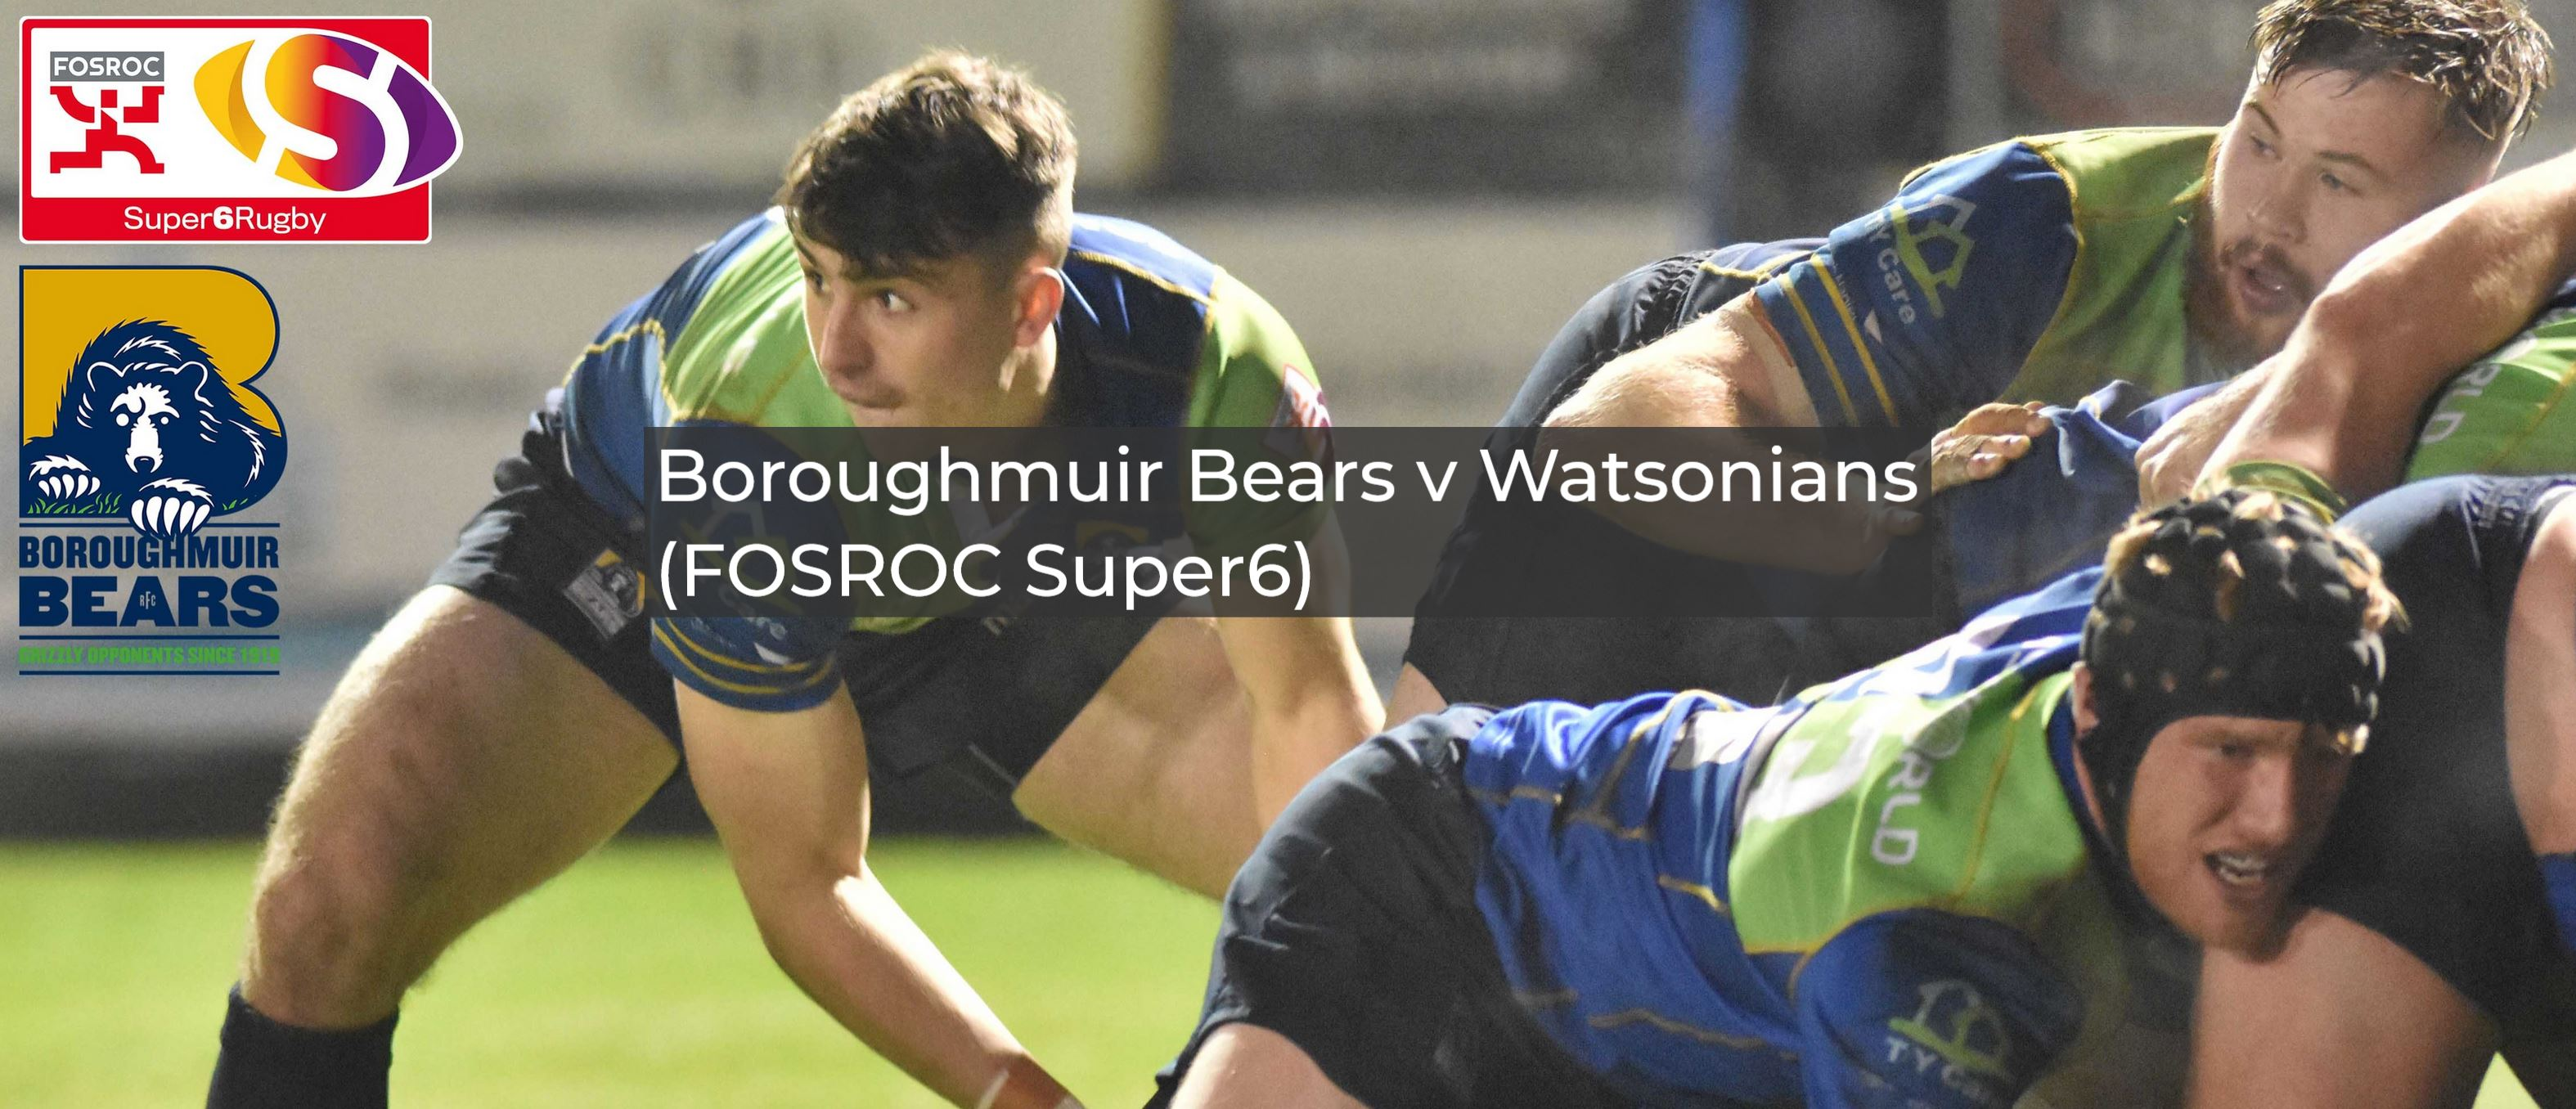 Link to Citizen tickets for Bears v Watsonians